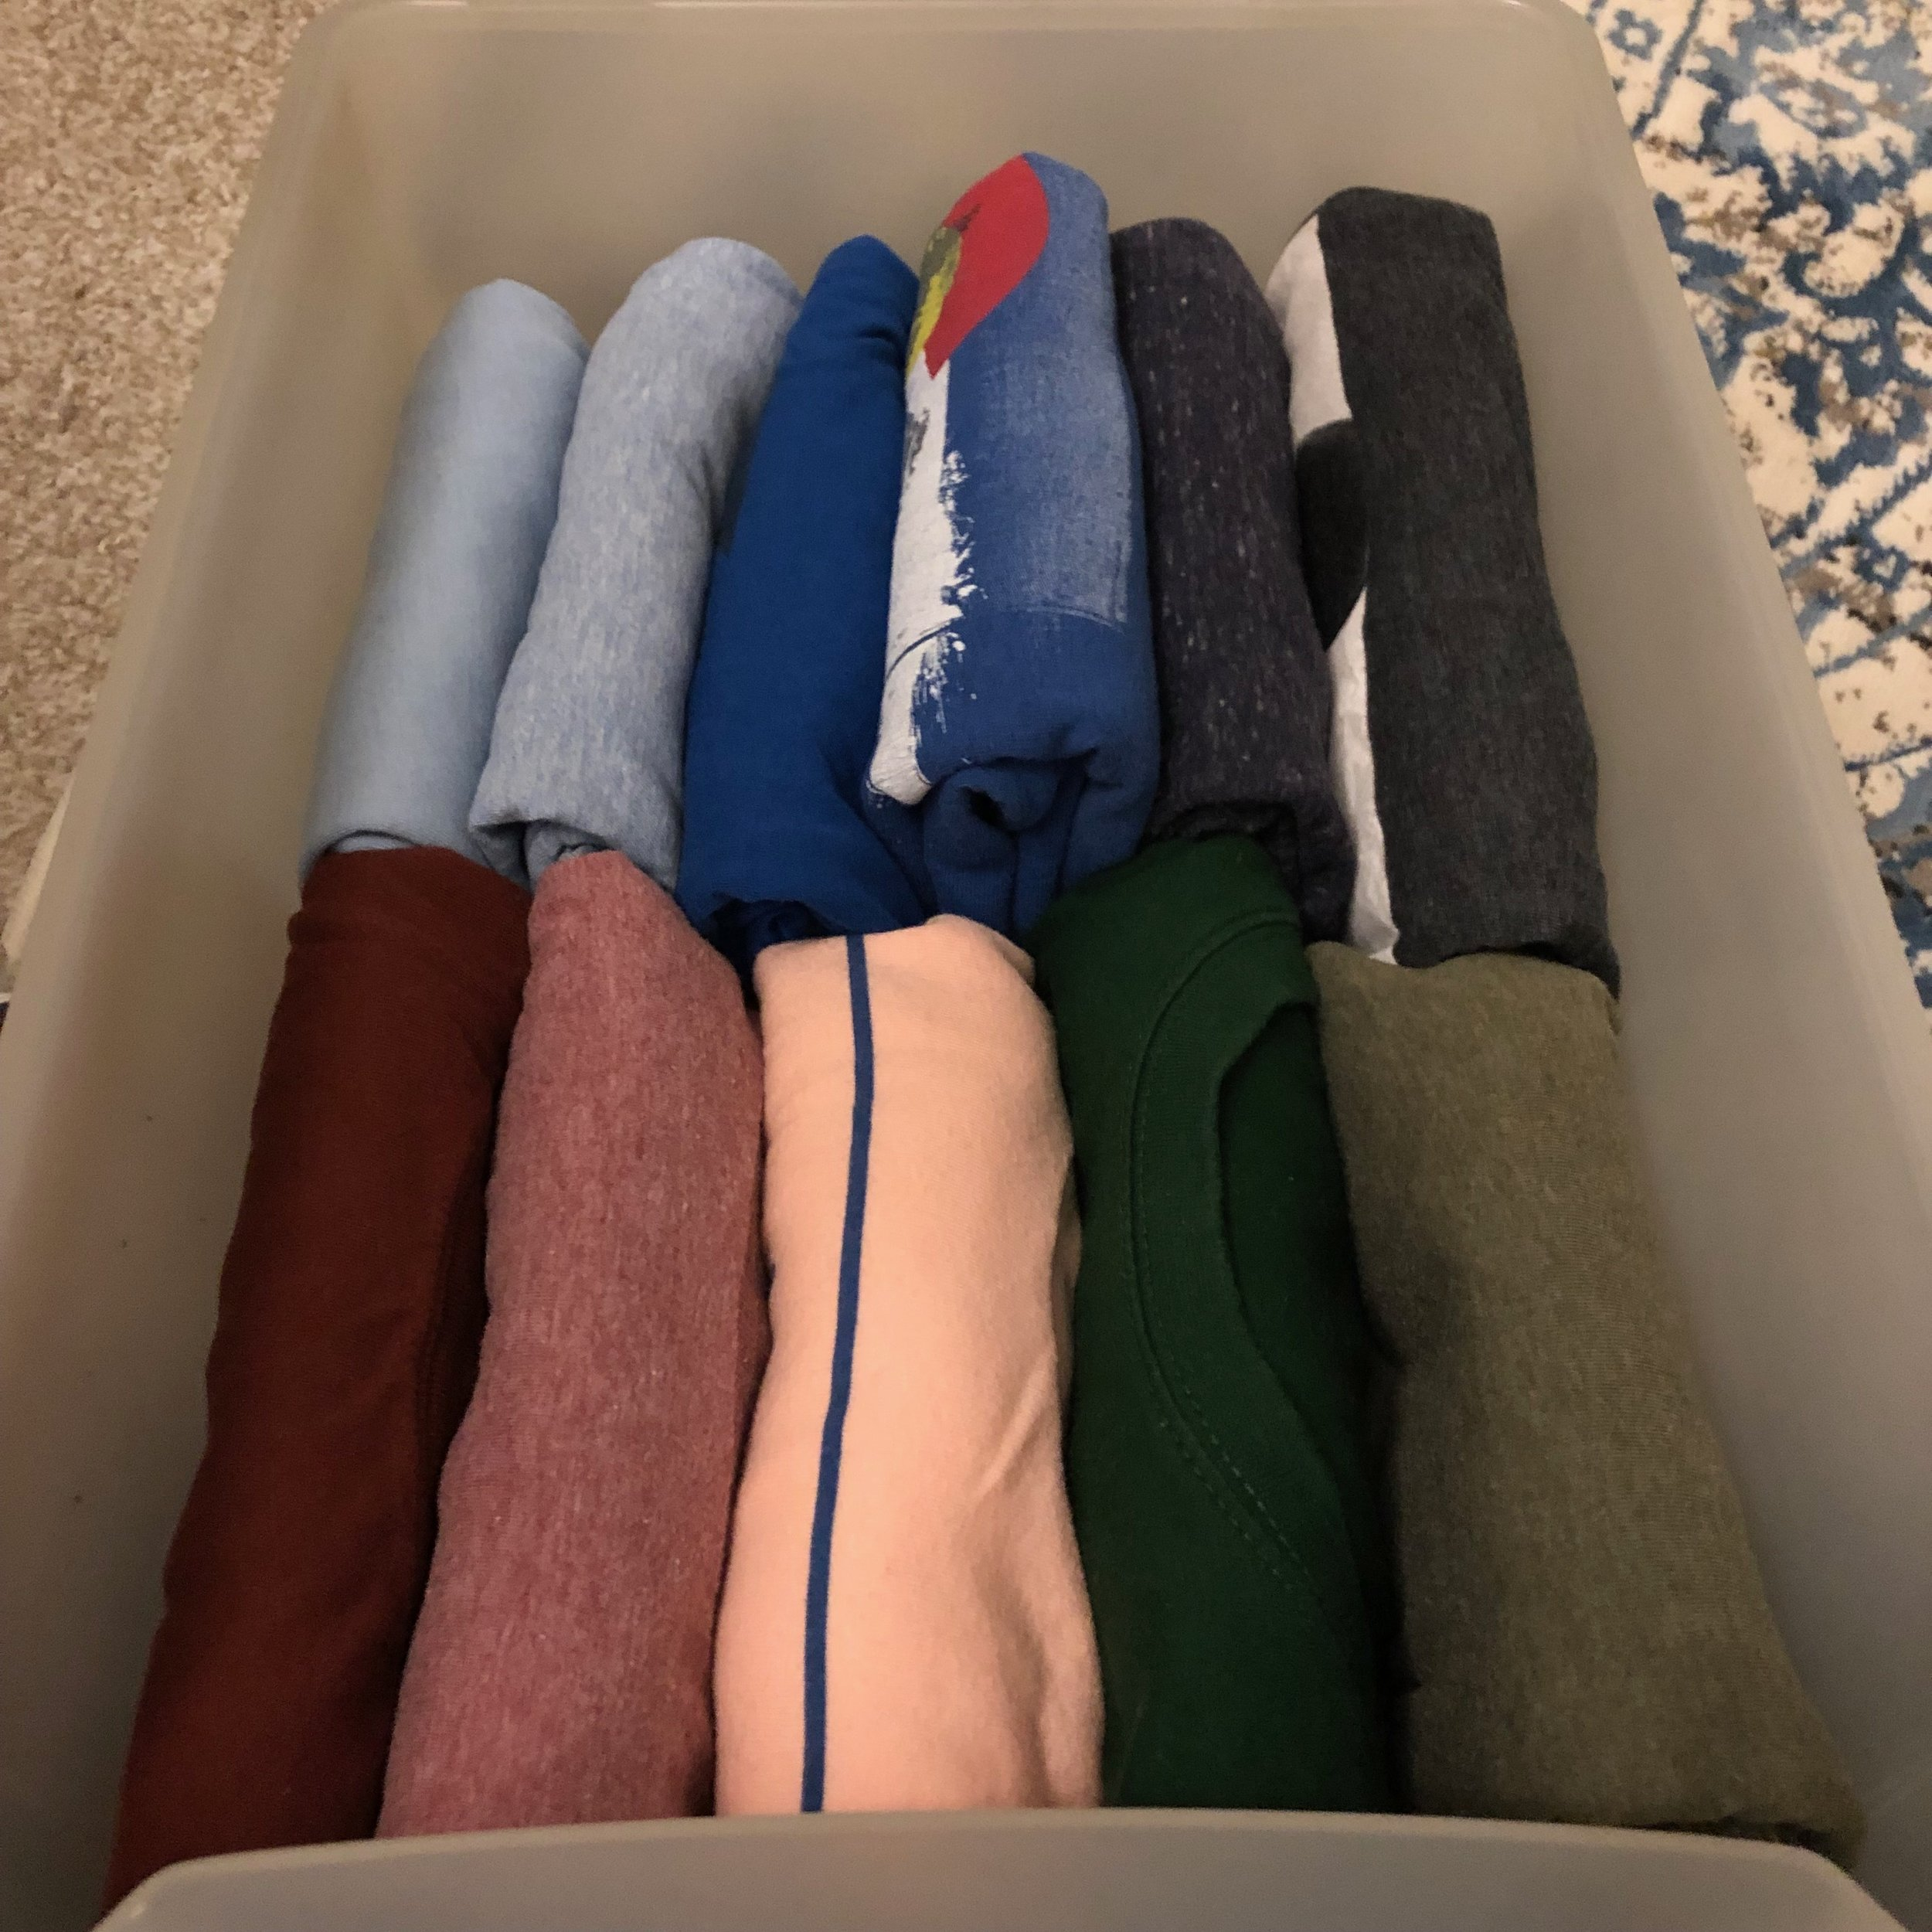 Utilizing the KonMari folding system you can see all shirts at a glance!